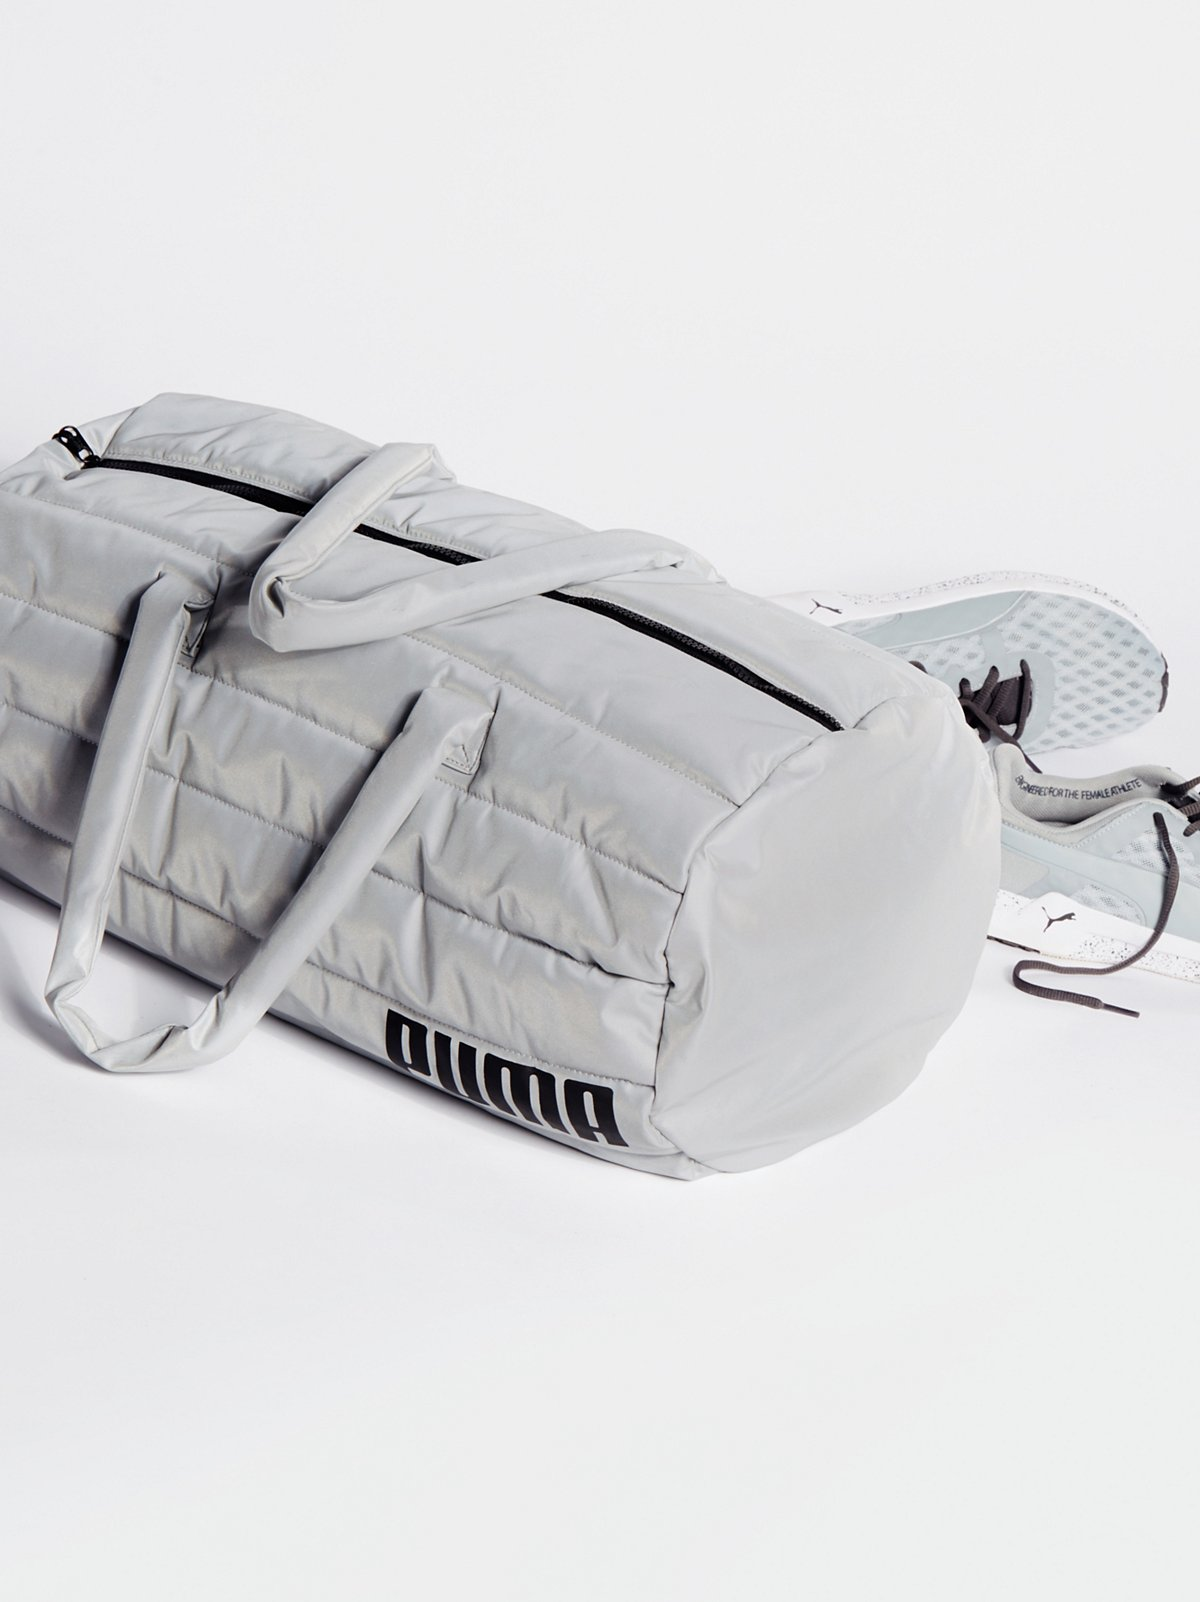 Counterpunch Duffel